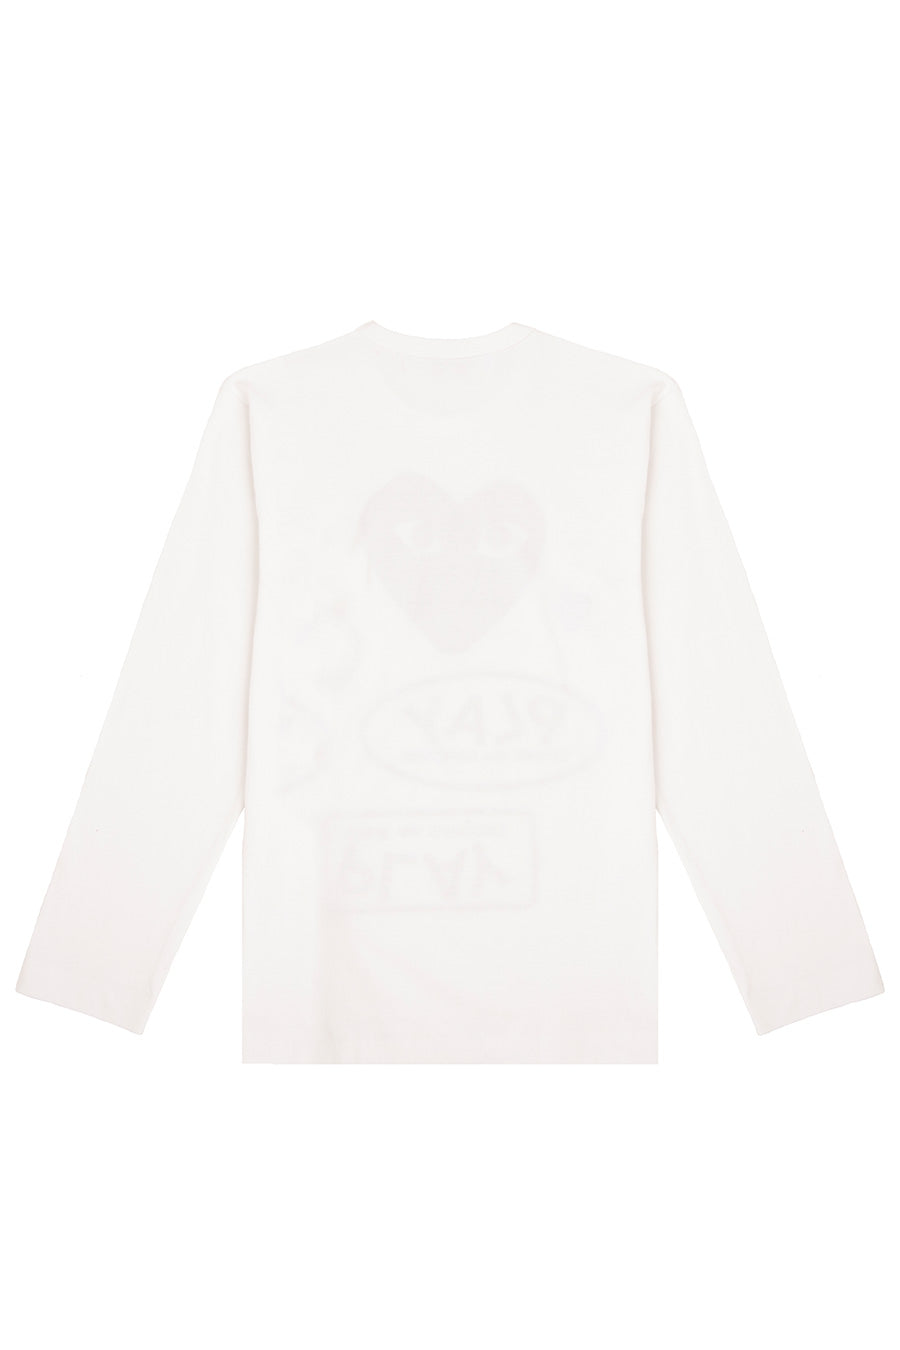 Comme des Garçons PLAY - White All Over Print Long Sleeve T-Shirt | 1032 SPACE